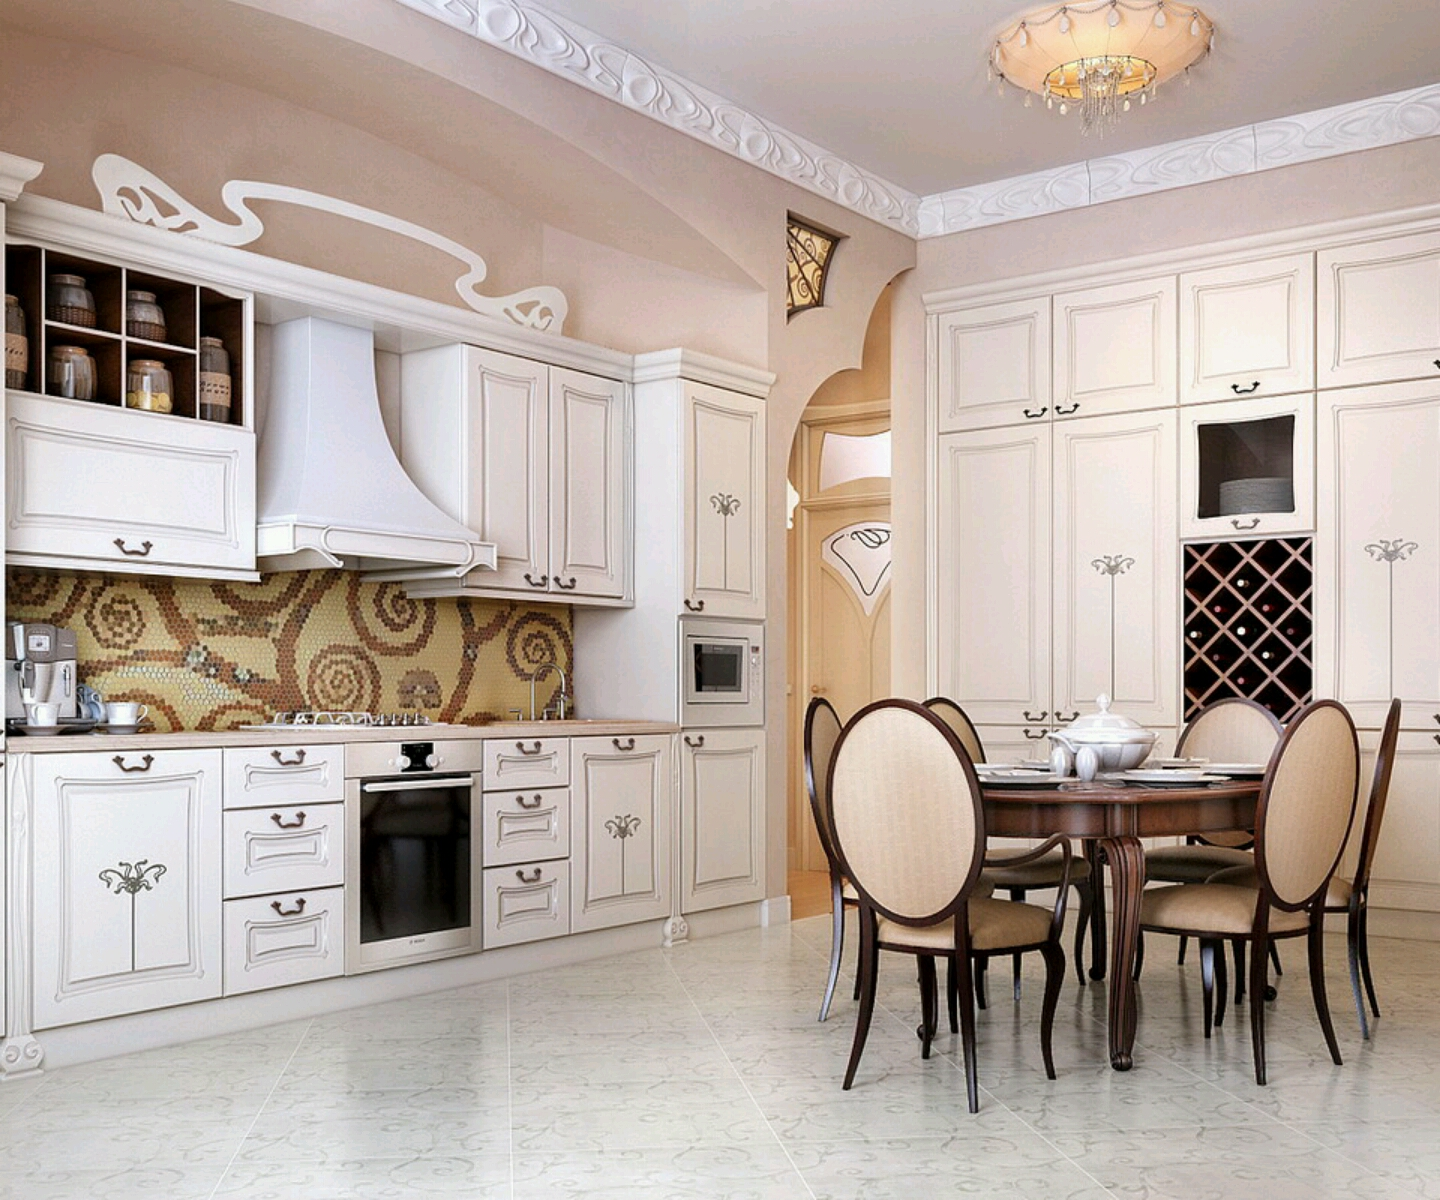 Modern kitchen furniture designs ideas vintage romantic for Kitchen furniture design ideas